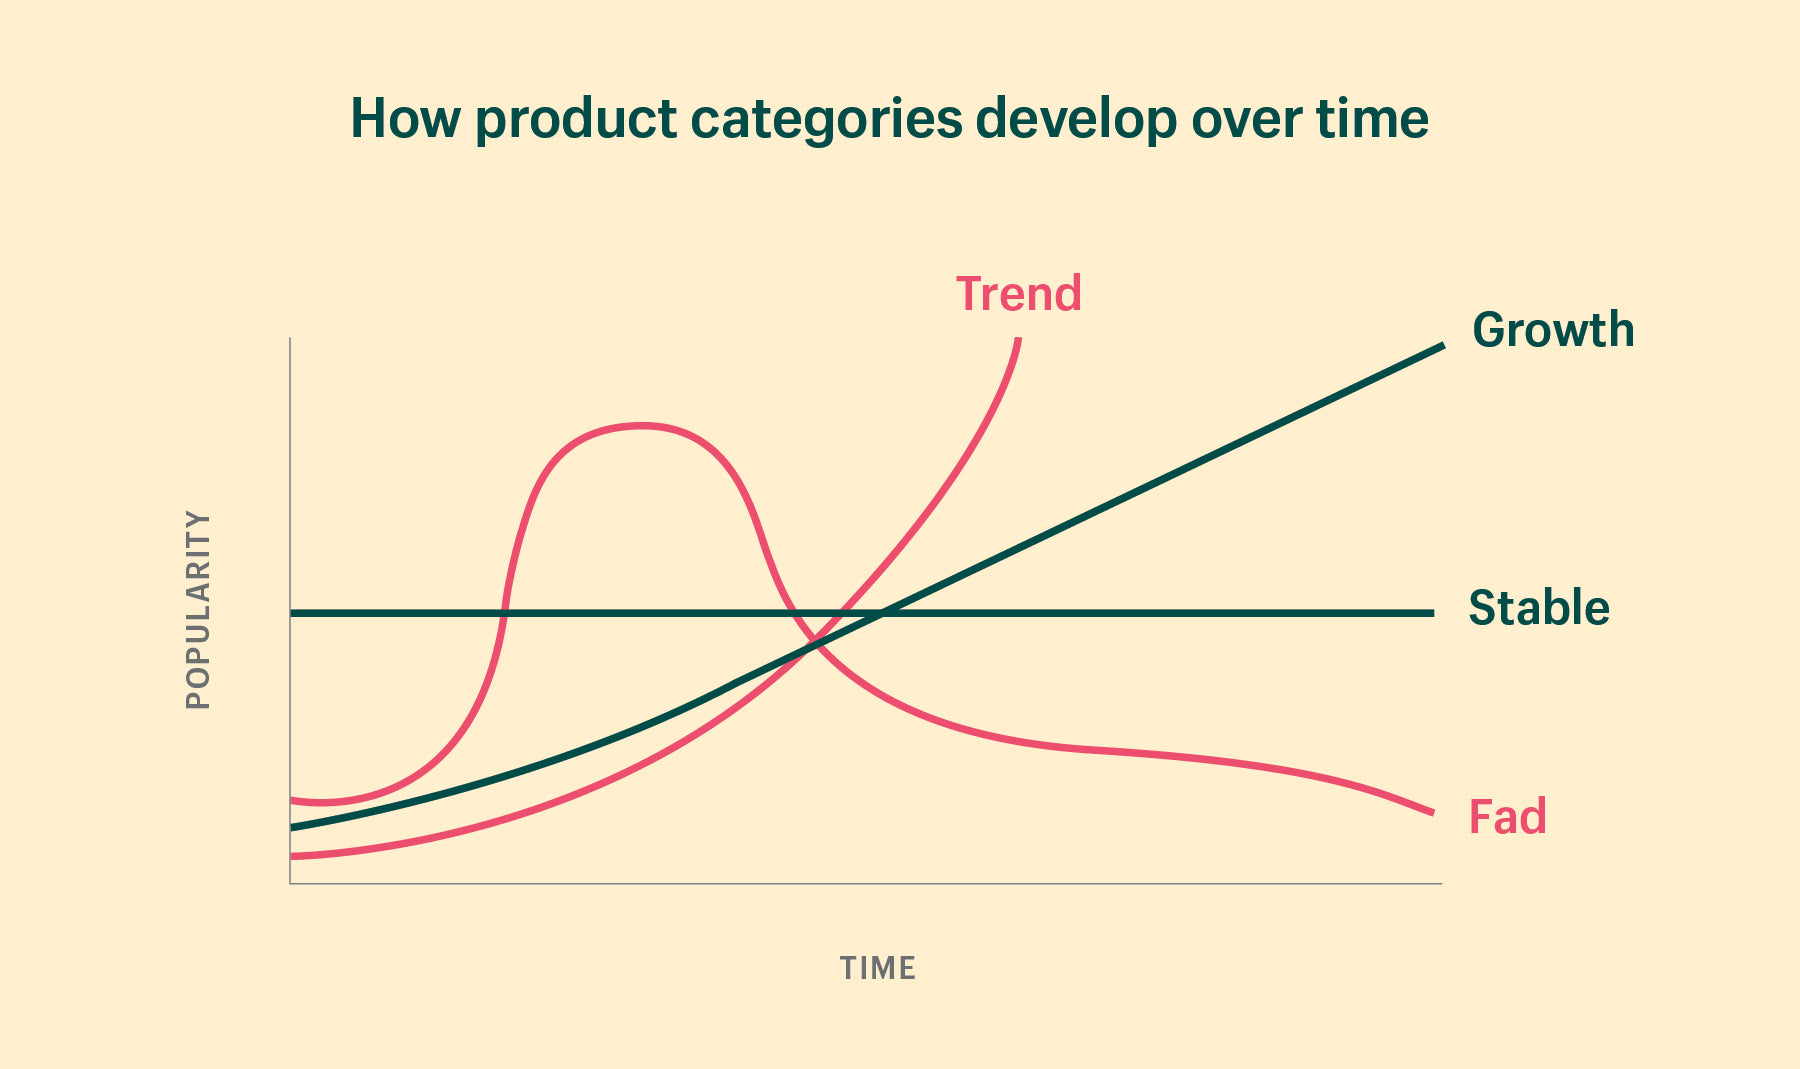 Chart showing the various product categories and their viability over time